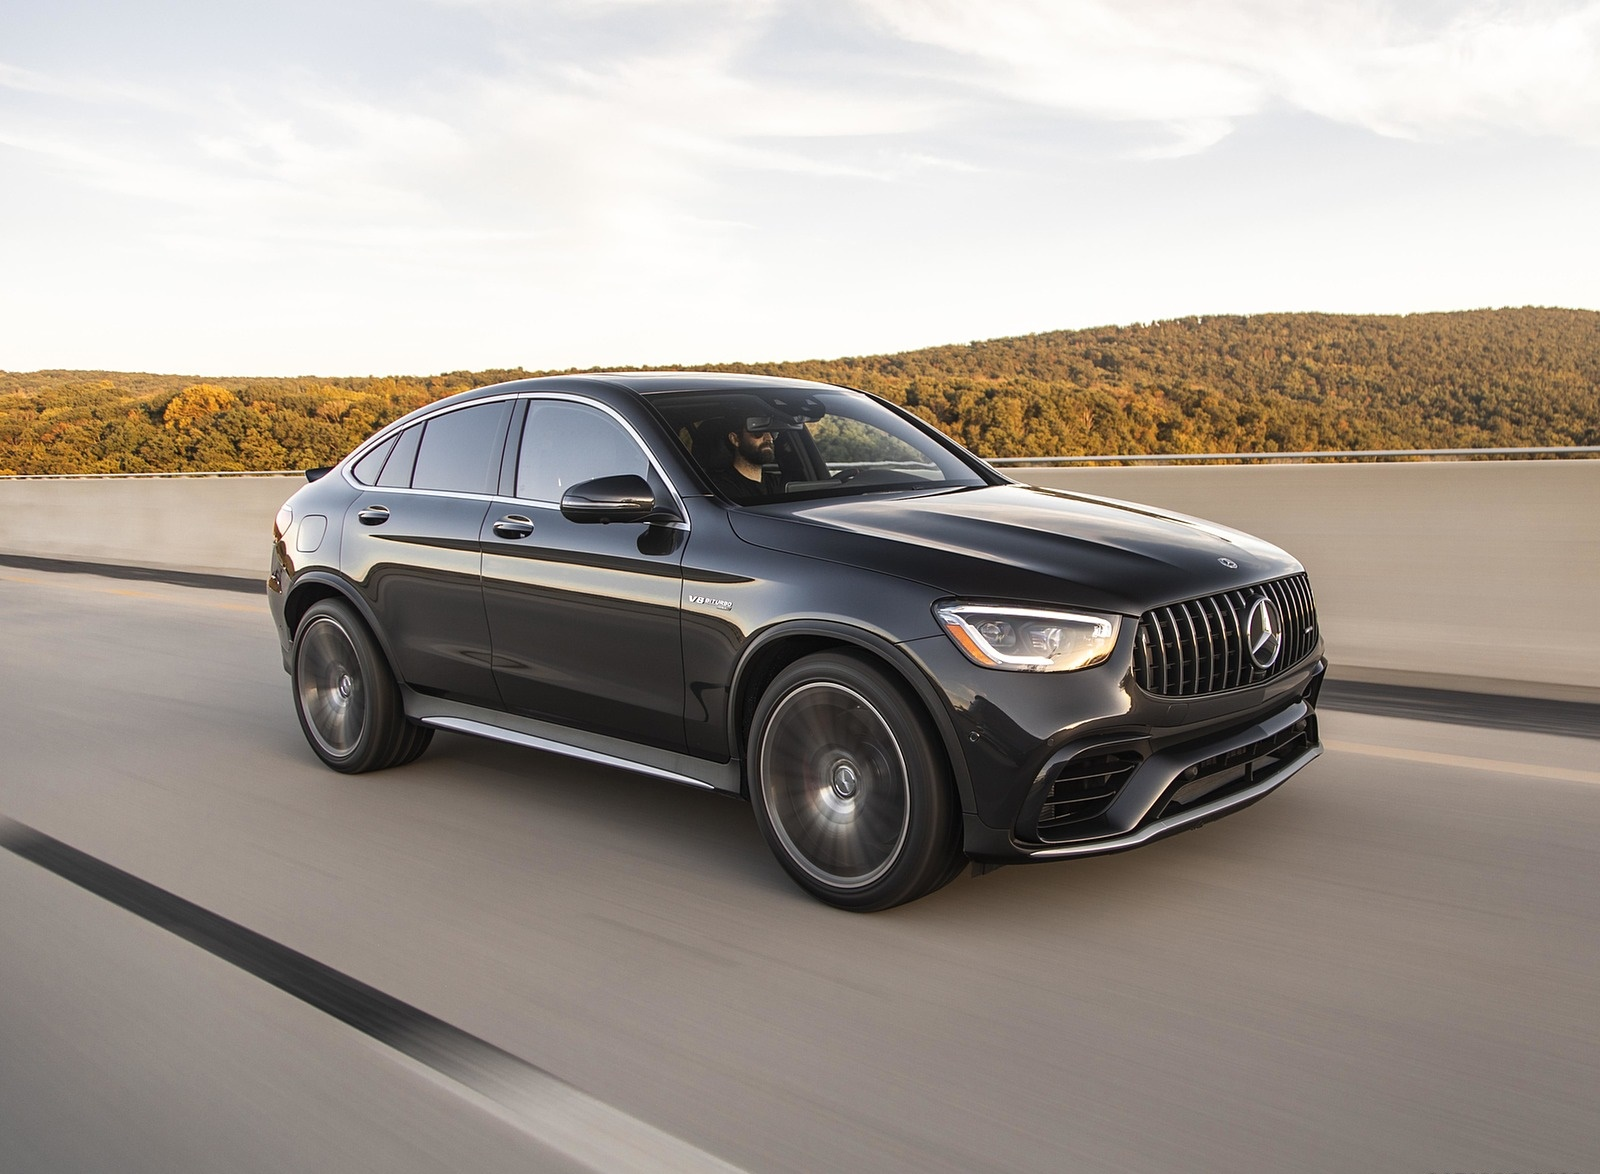 2020 Mercedes-AMG GLC 63 S Coupe (US-Spec) Front Three-Quarter Wallpapers (6)